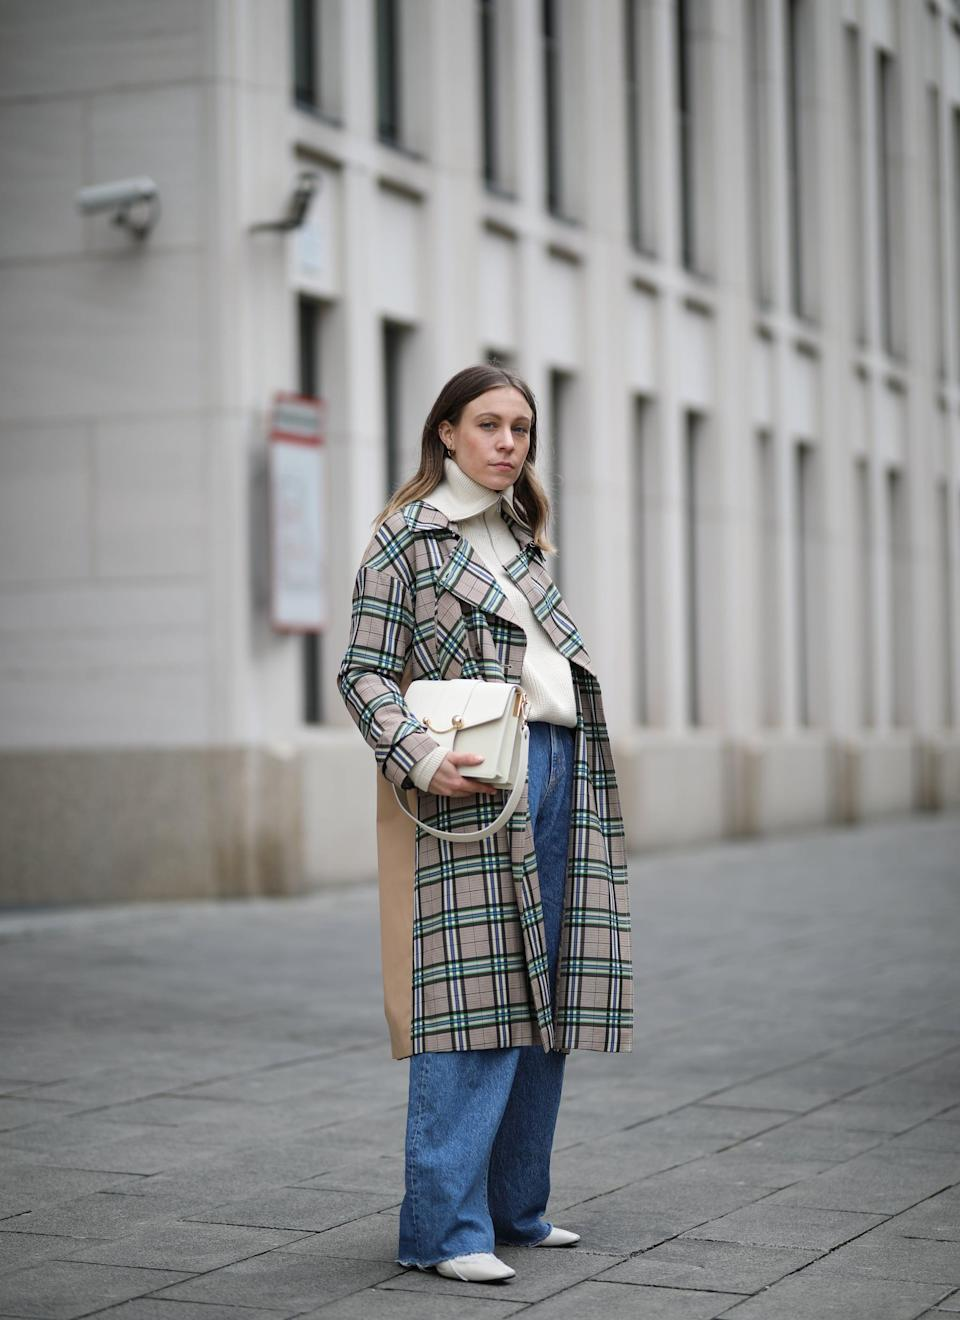 <p>Classic pieces like a sweater, a plaid coat, pointed-toe boots, and a structured bag make a pair of slouchy jeans look so polished.</p>